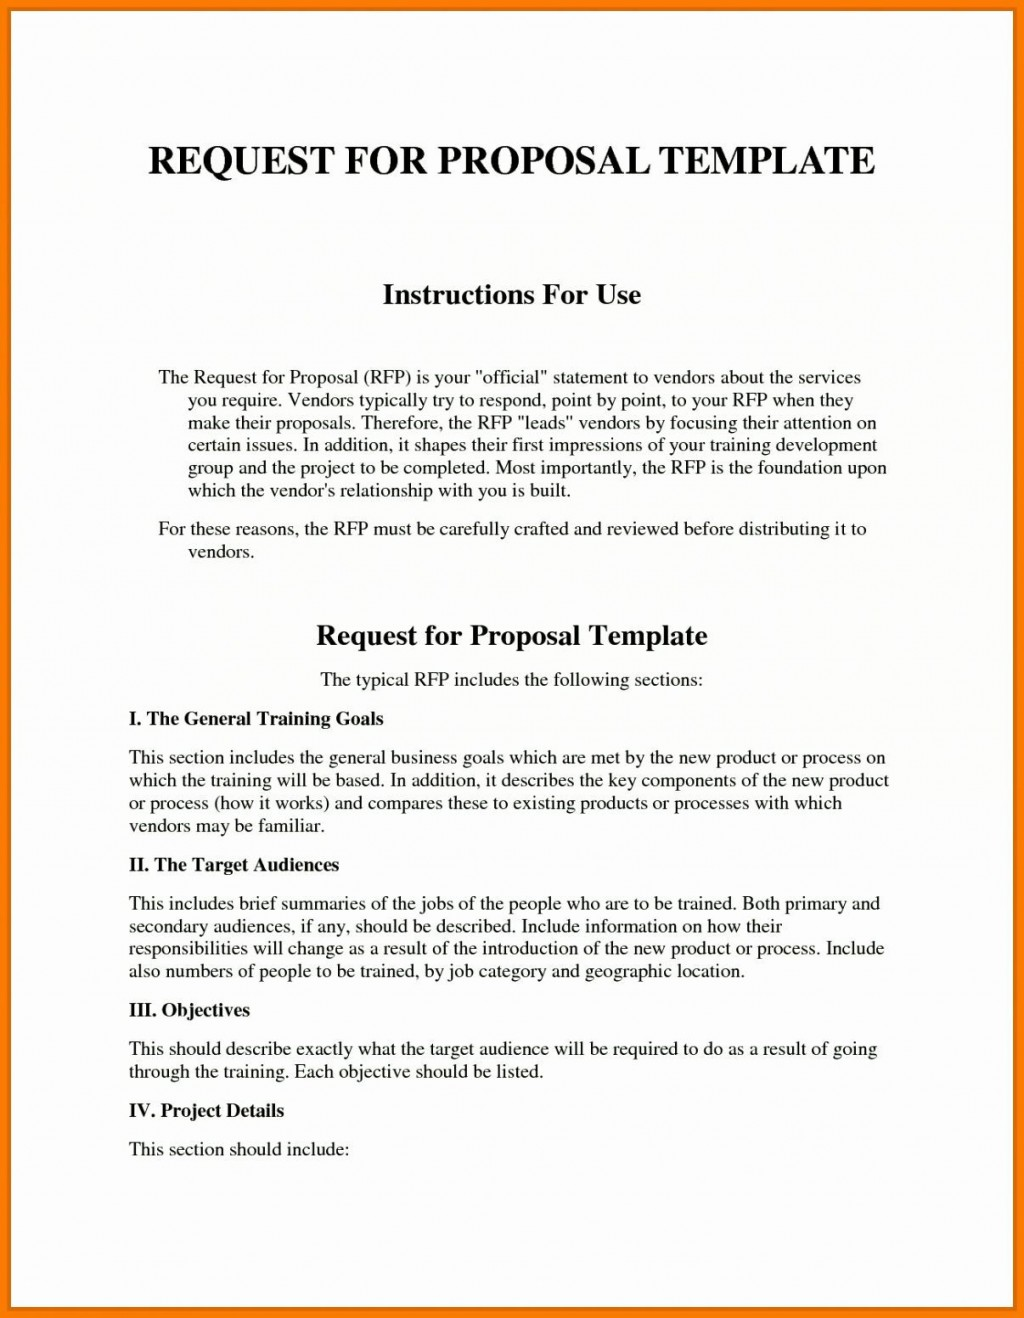 003 Remarkable Request For Proposal Rfp Template Construction Inspiration Large